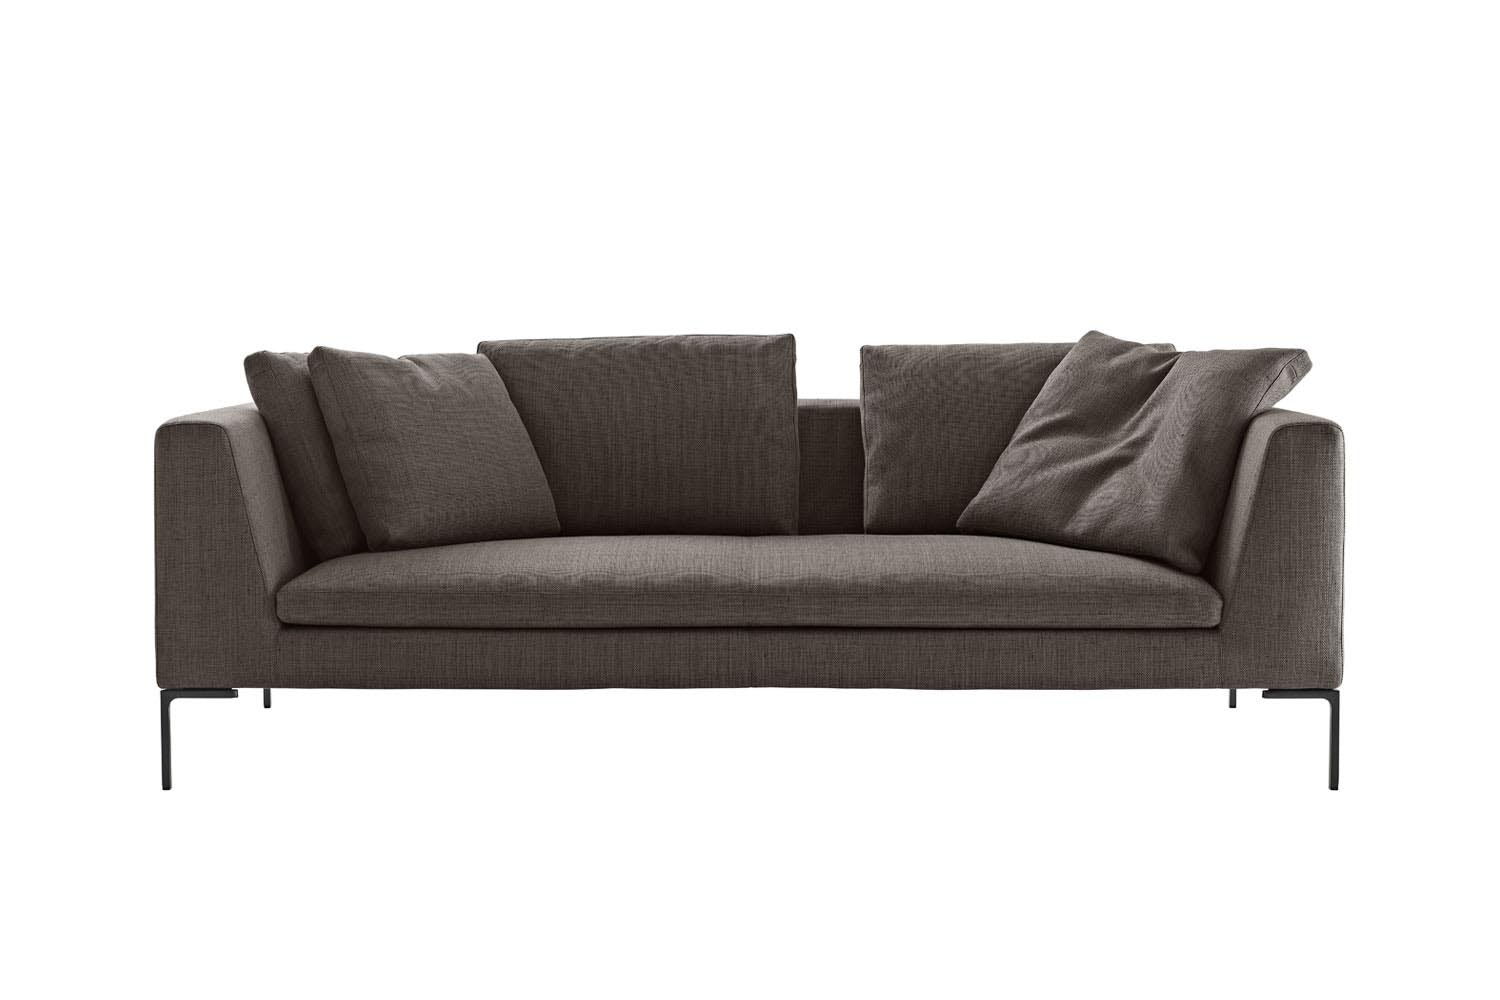 Charles Sofa in Fabric by Antonio Citterio for B&B Italia